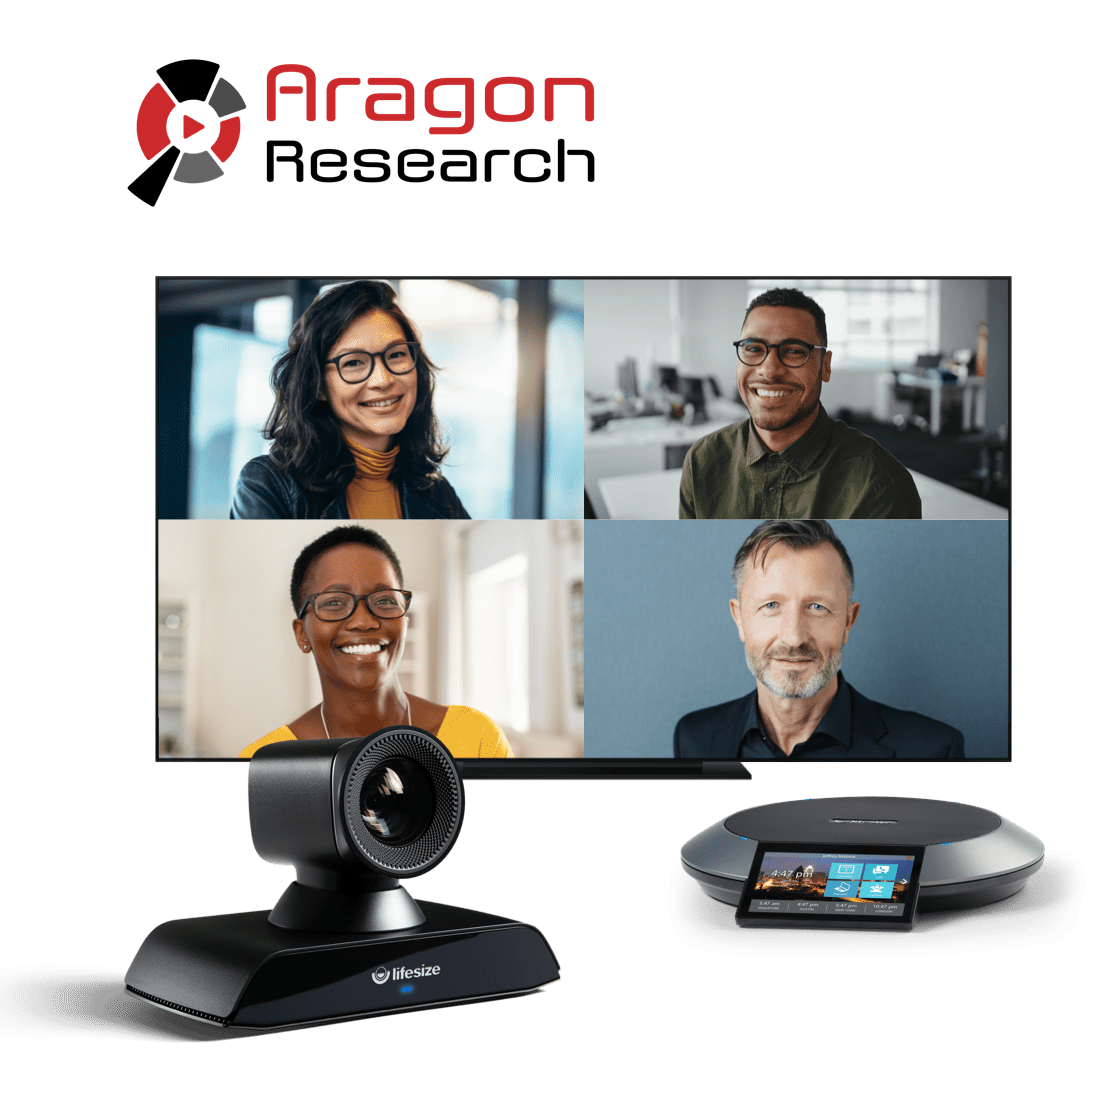 Aragon Research Award Image featuring Lifesize Icon 700 and Phone HD along with a 4 way call